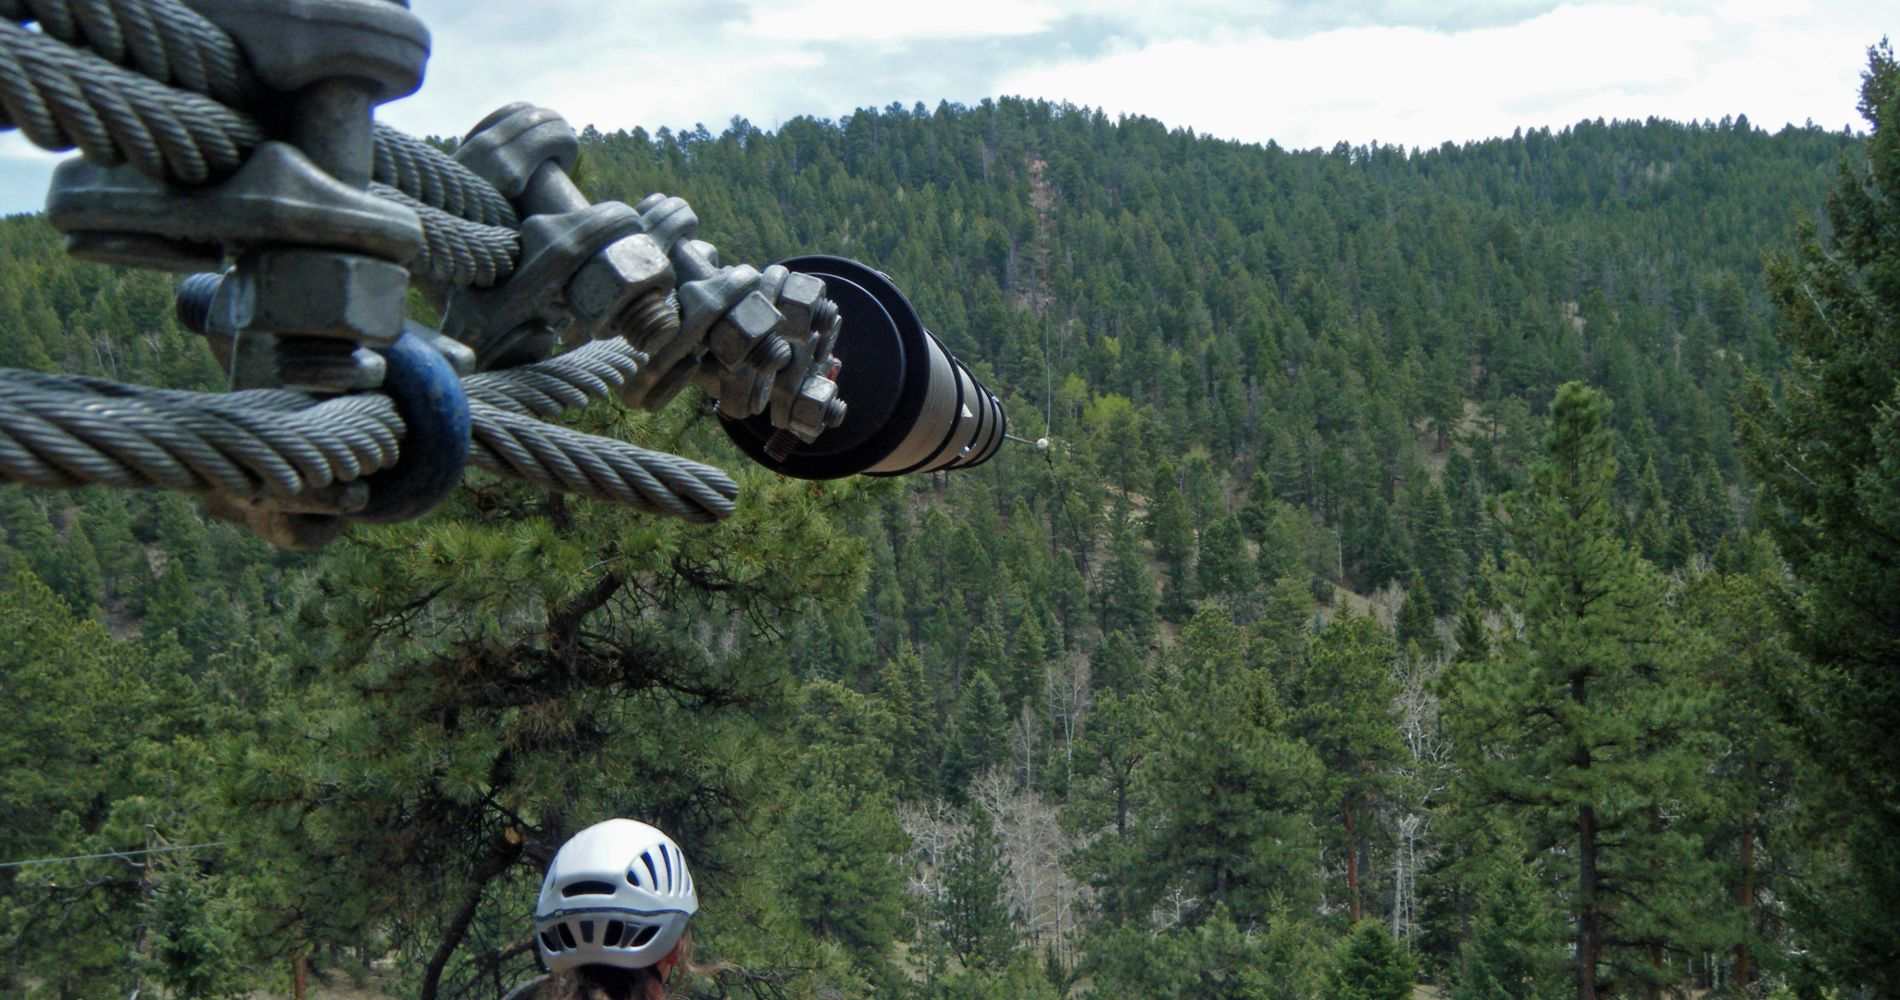 The Rocky Mountain Zipline Adventure in Denver